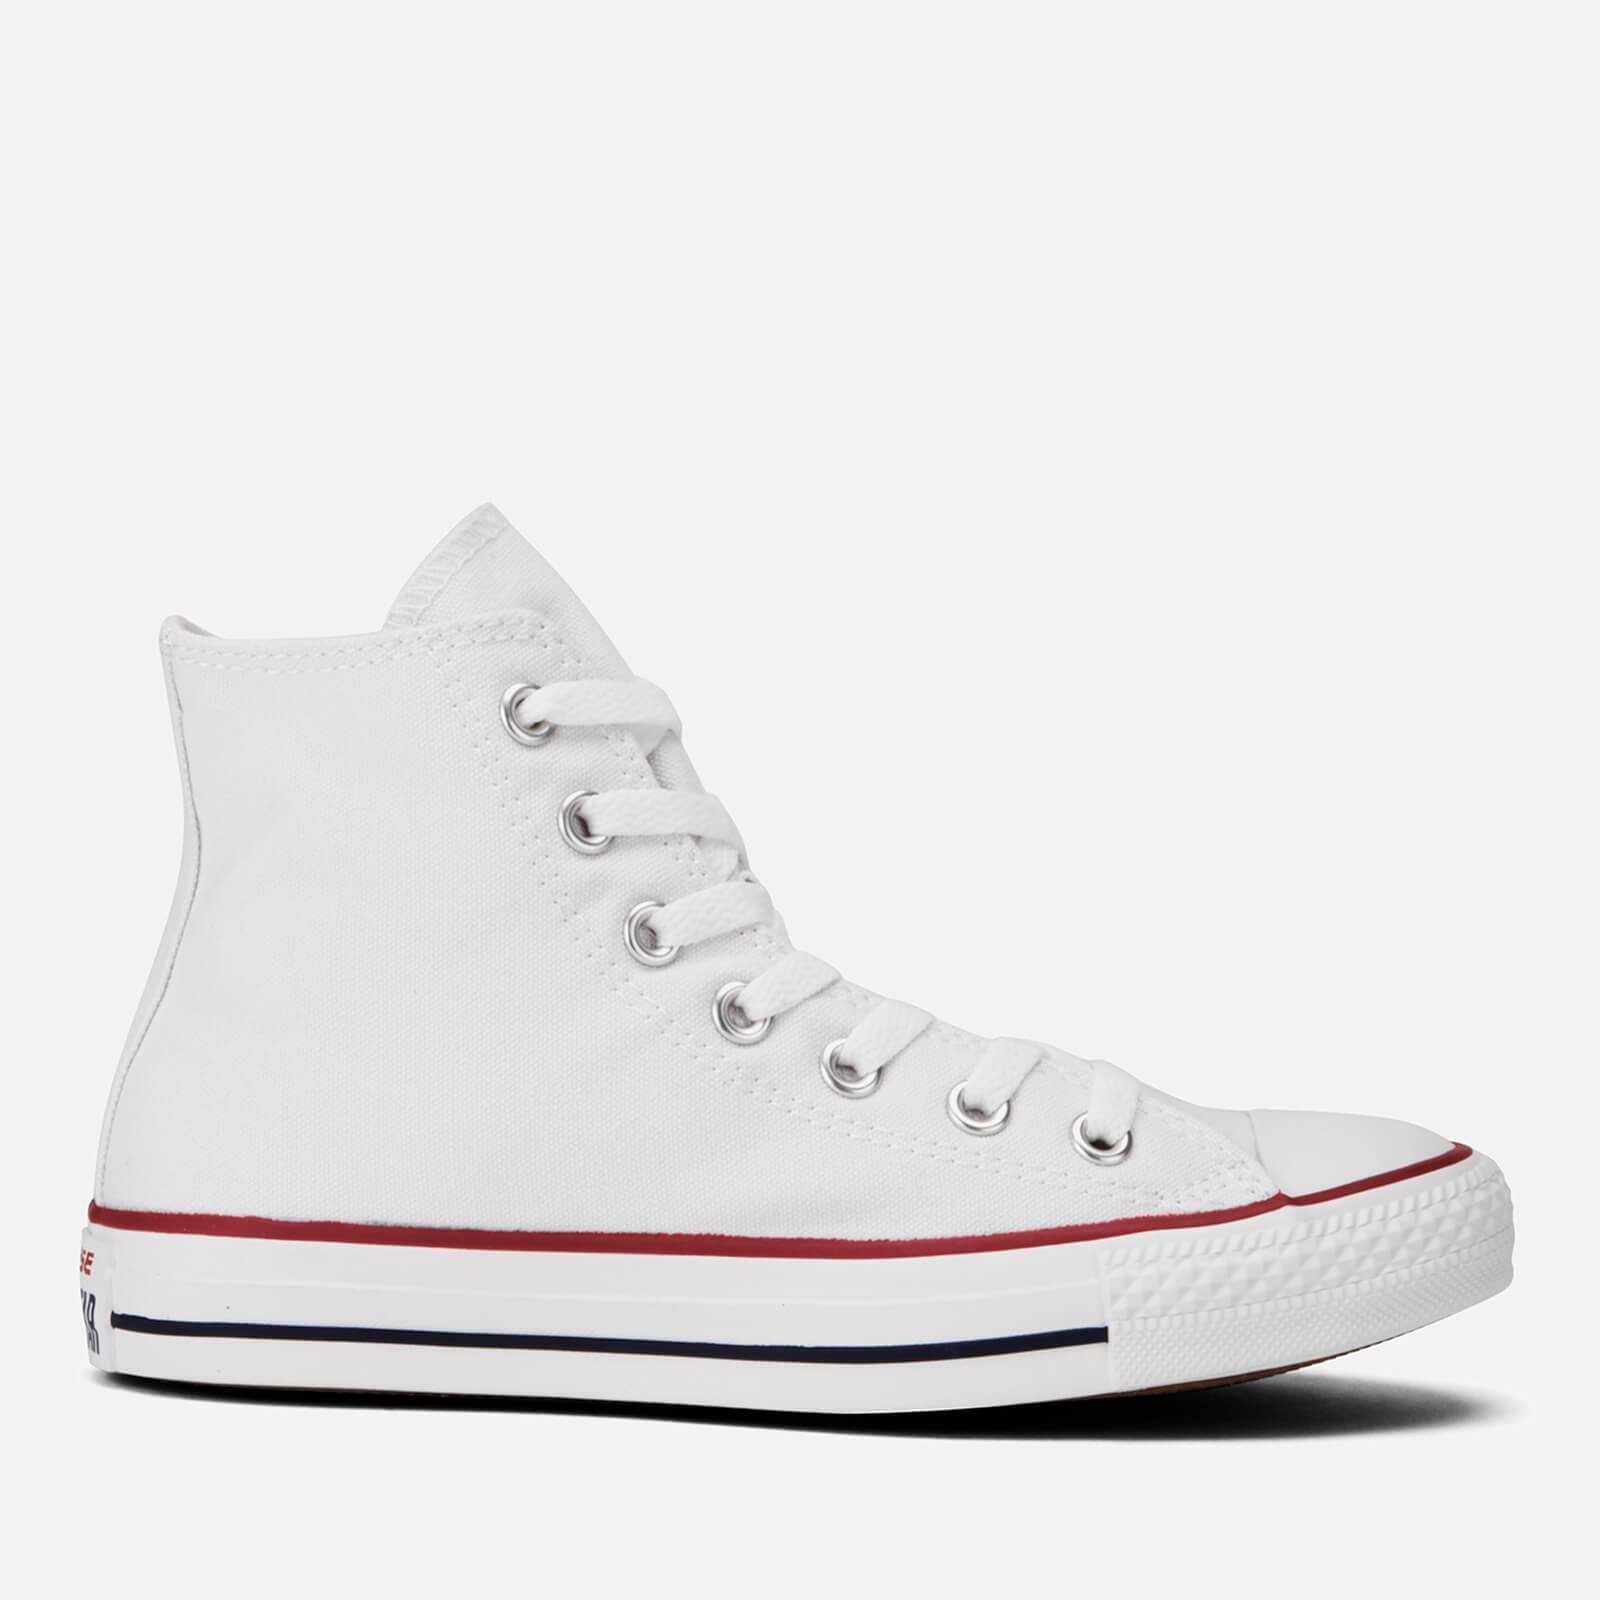 Converse Chuck Taylor All Star Hi-Top Trainers - Optical White - UK 7